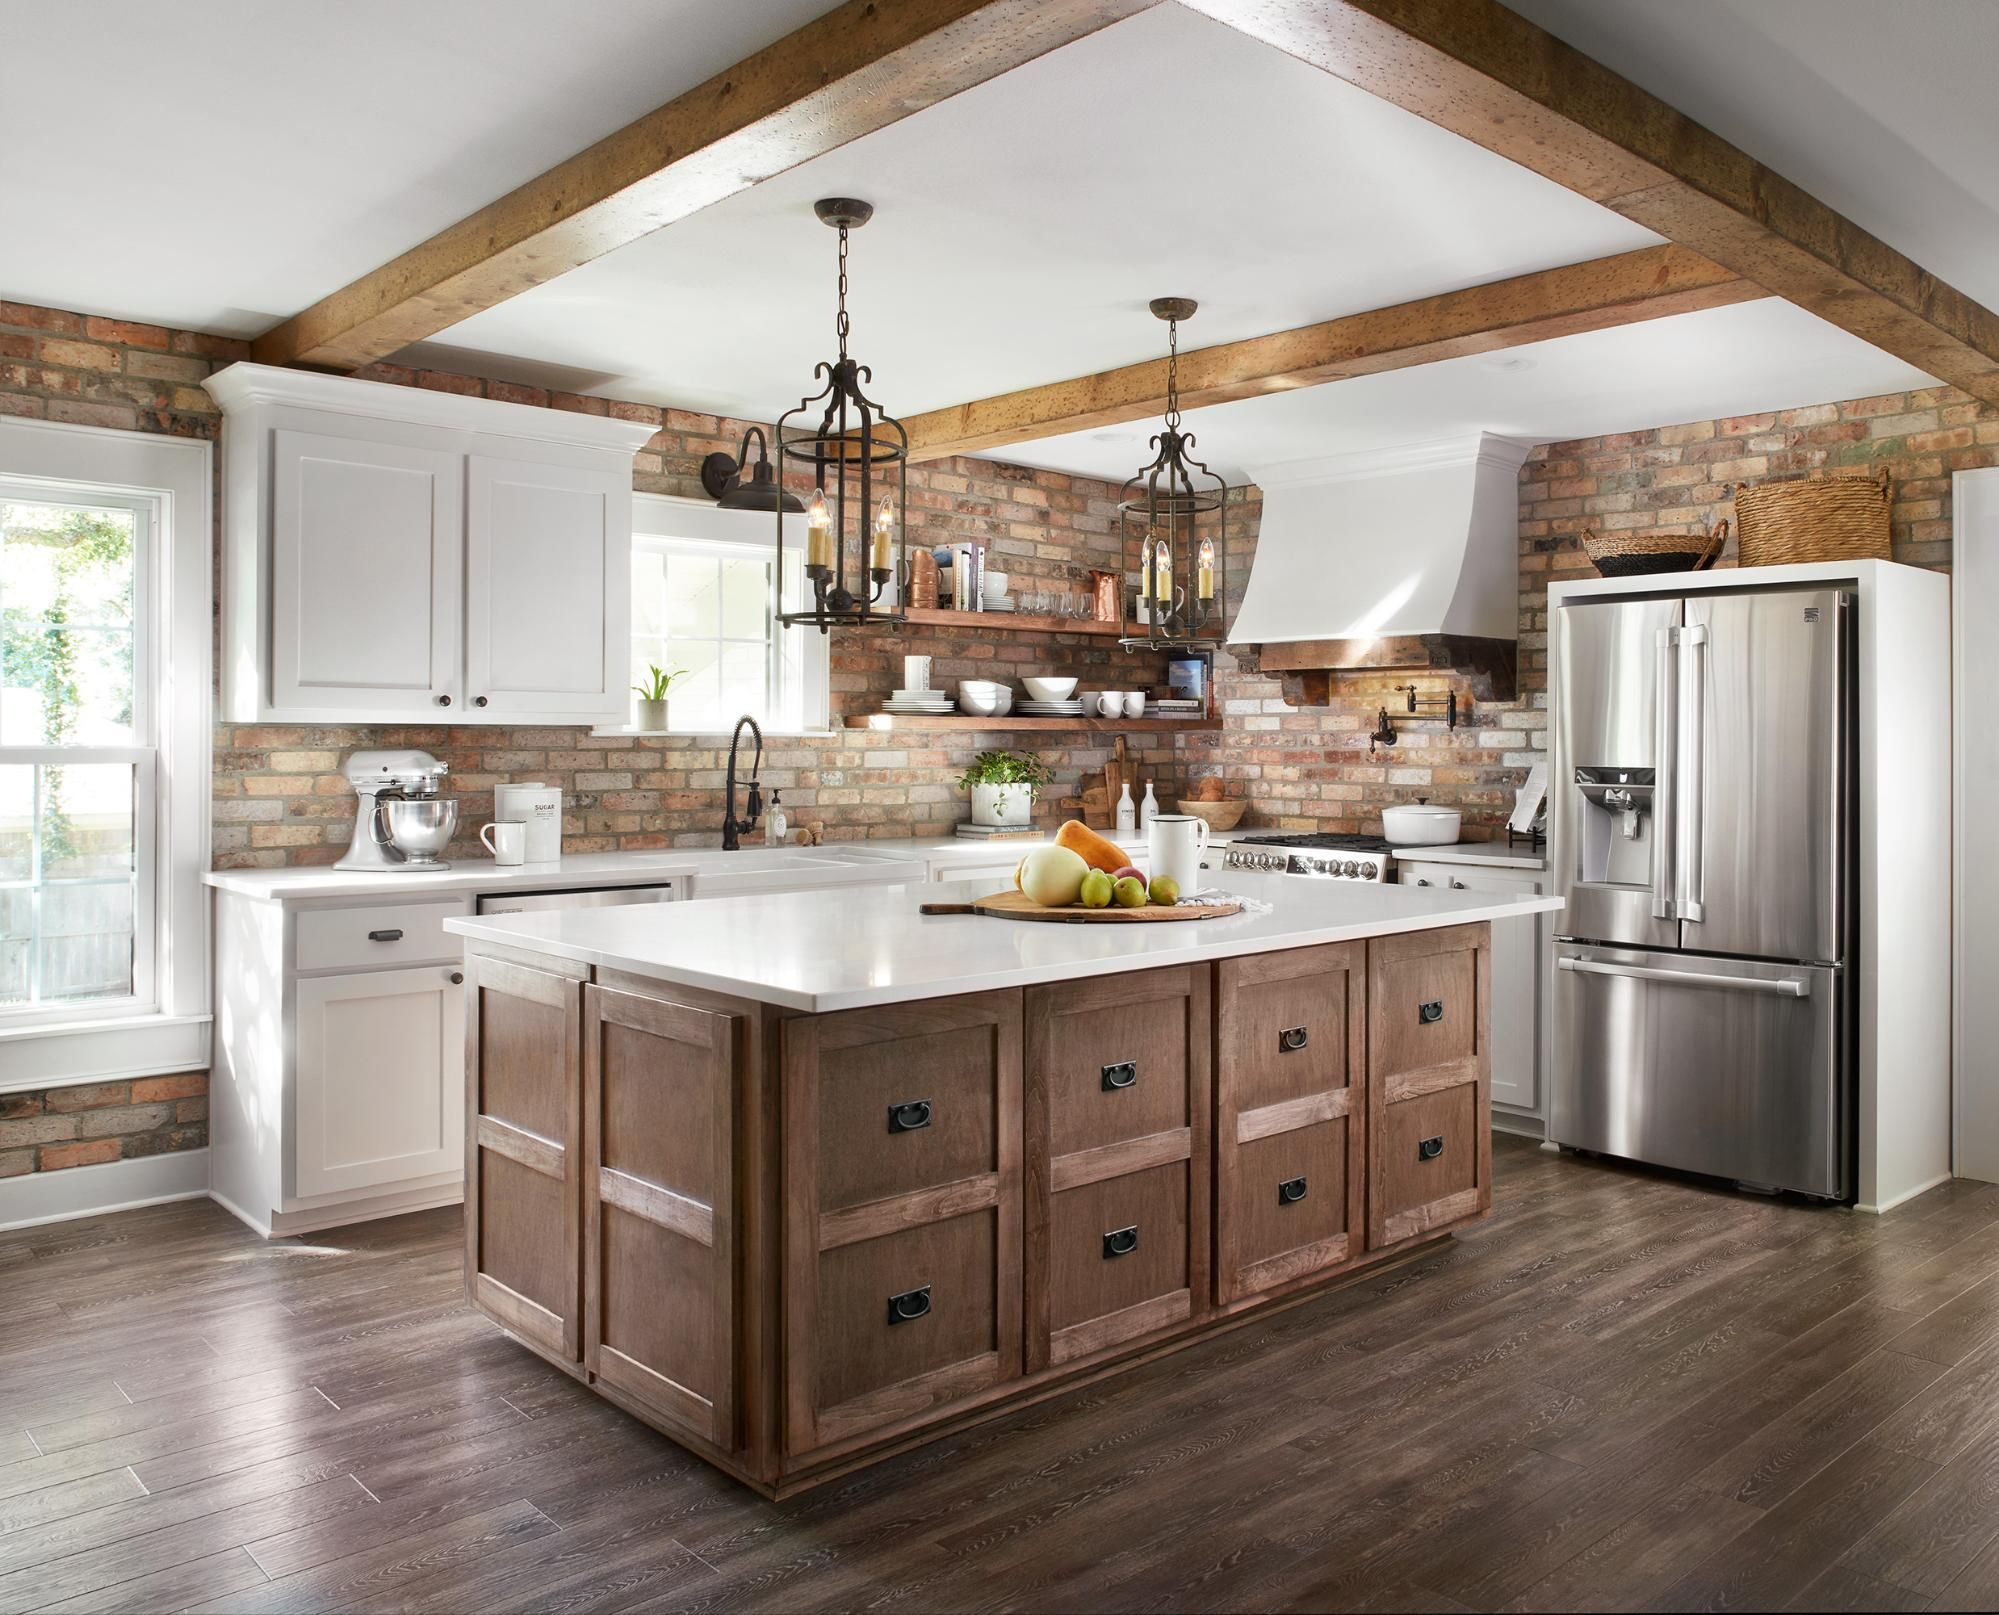 interesting joanna gaines kitchen designs and episode 3 season 5 smapin com farmhouse on kitchen layout ideas with island joanna gaines id=21812